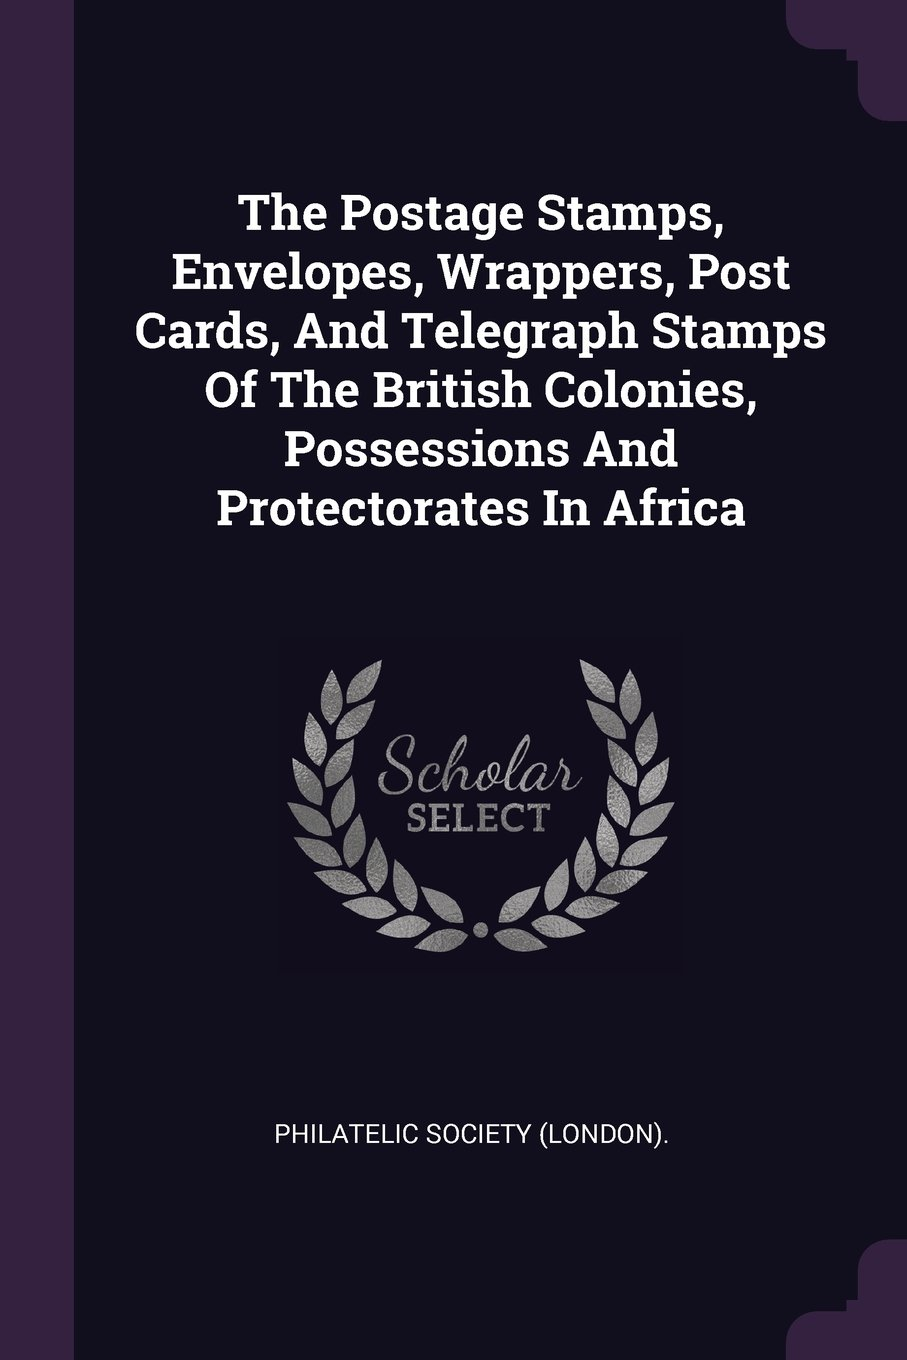 The Postage Stamps, Envelopes, Wrappers, Post Cards, And Telegraph Stamps Of The British Colonies, Possessions And Protectorates In Africa pdf